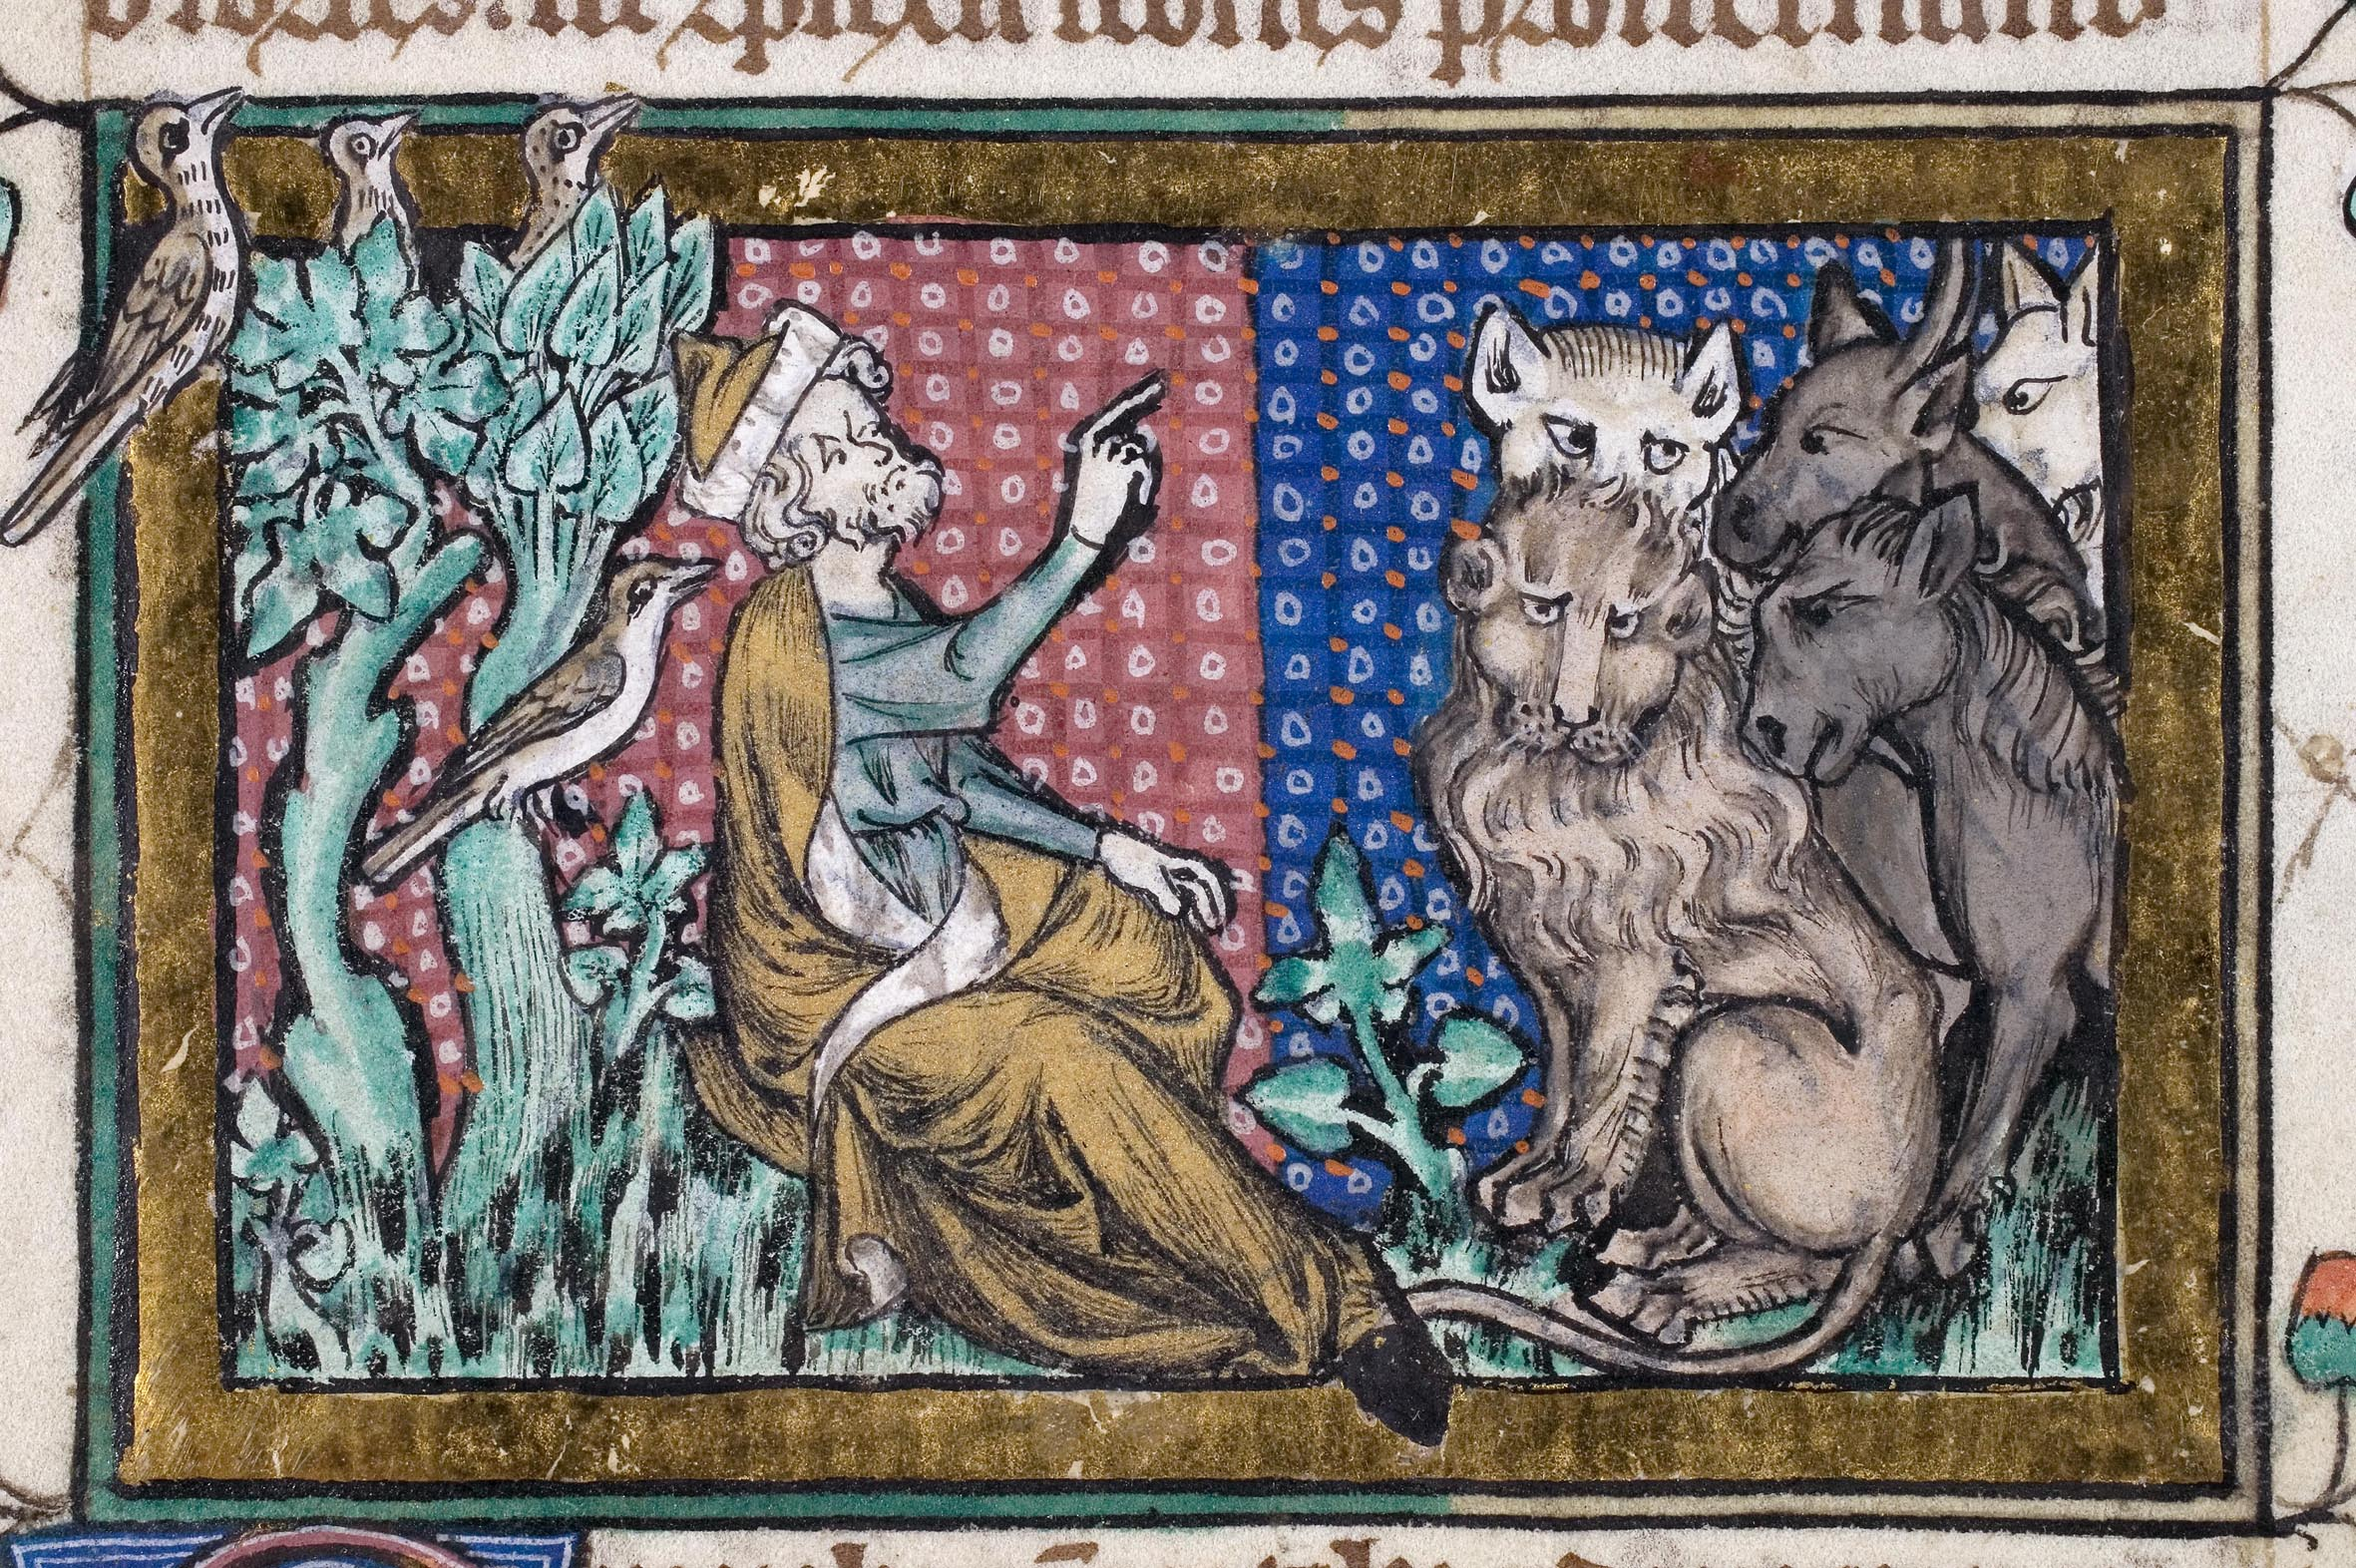 Adam naming the animals of the world, from the Peterborough Bestiary (MS 53, f. 195v)